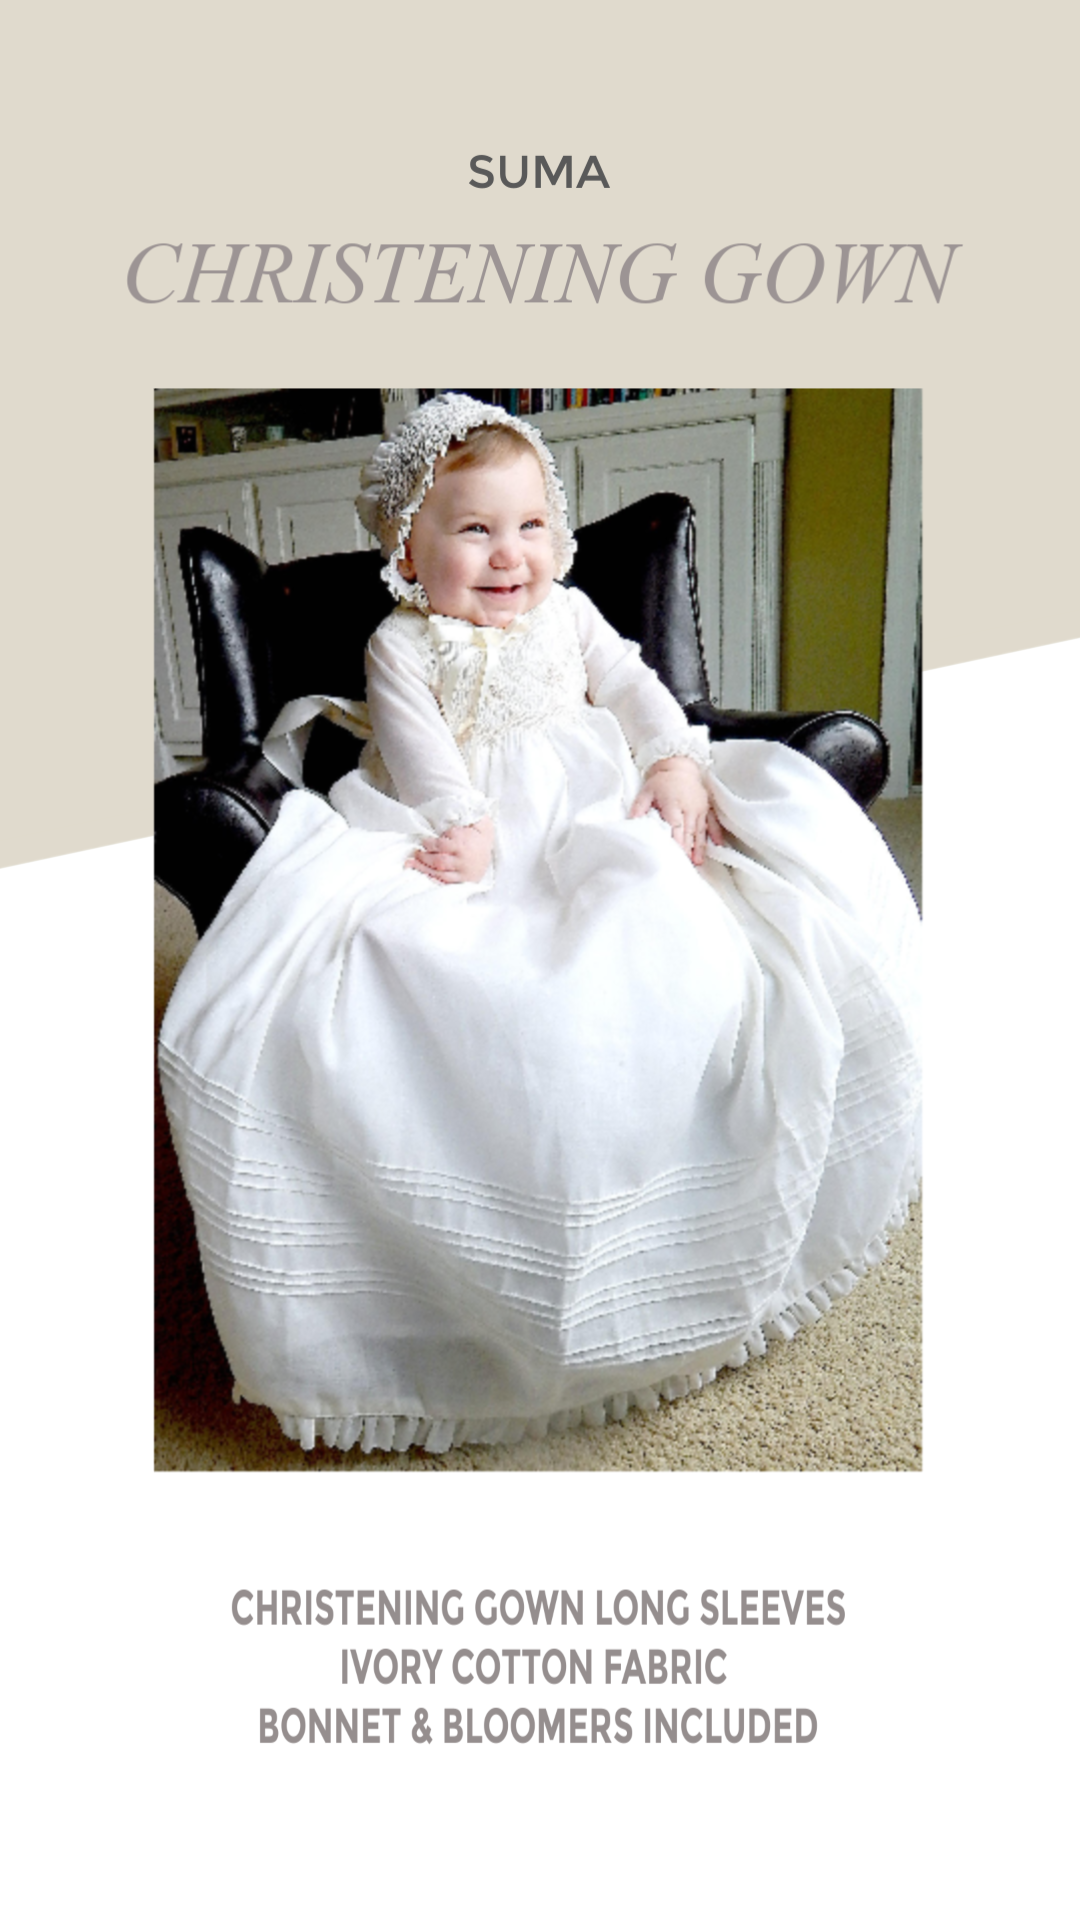 f027c4dd3 Christening gown girls Christening gown etsy Christening gown catholic  Christening gown baby Christening gown heirloom Christening gown baptism  Christening ...